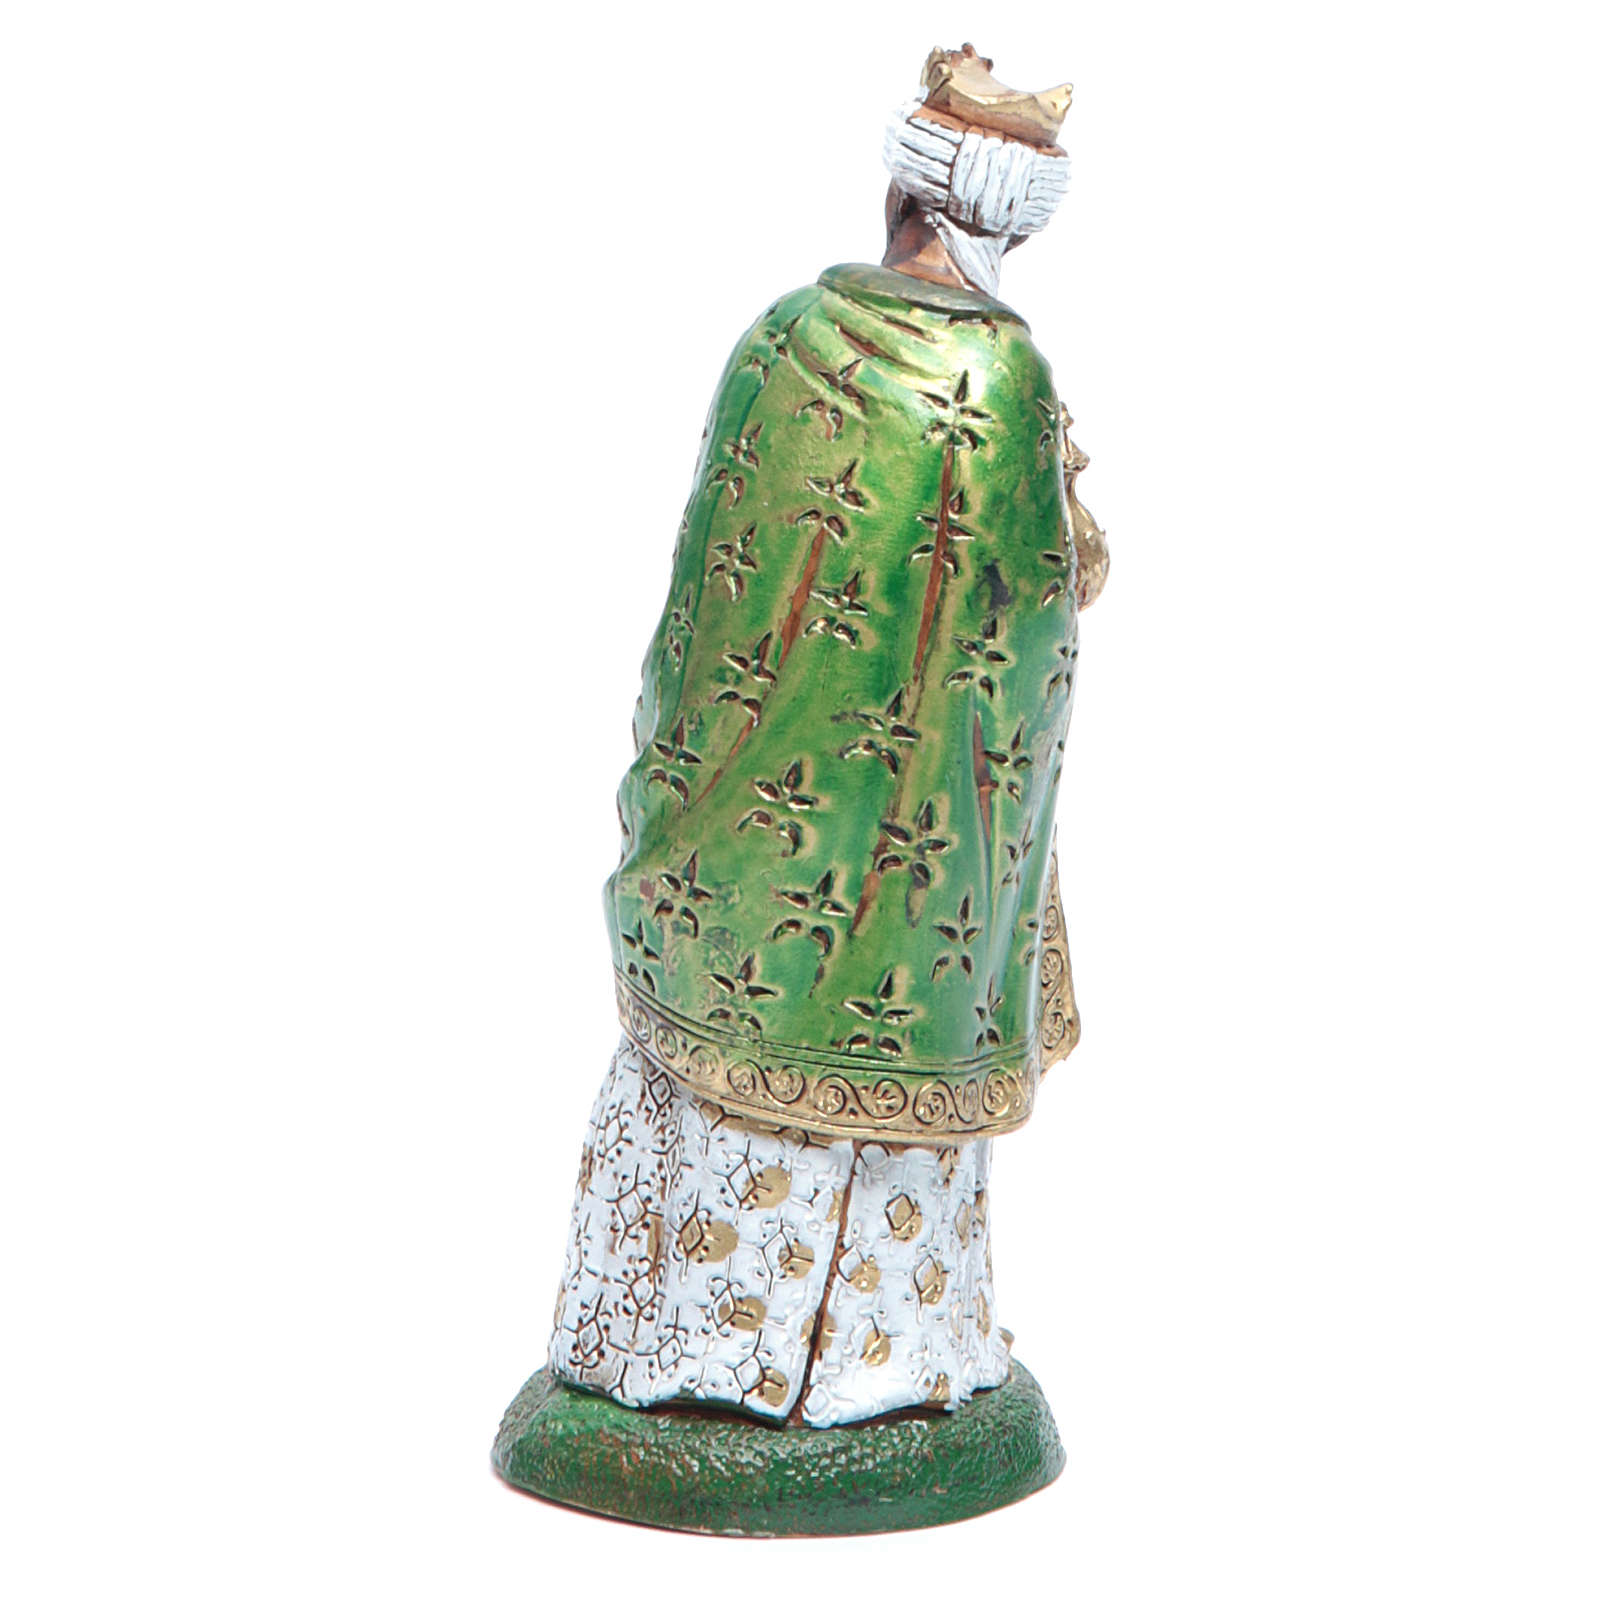 Moranduzzo nativity scene figurine 12cm, black wise king 4